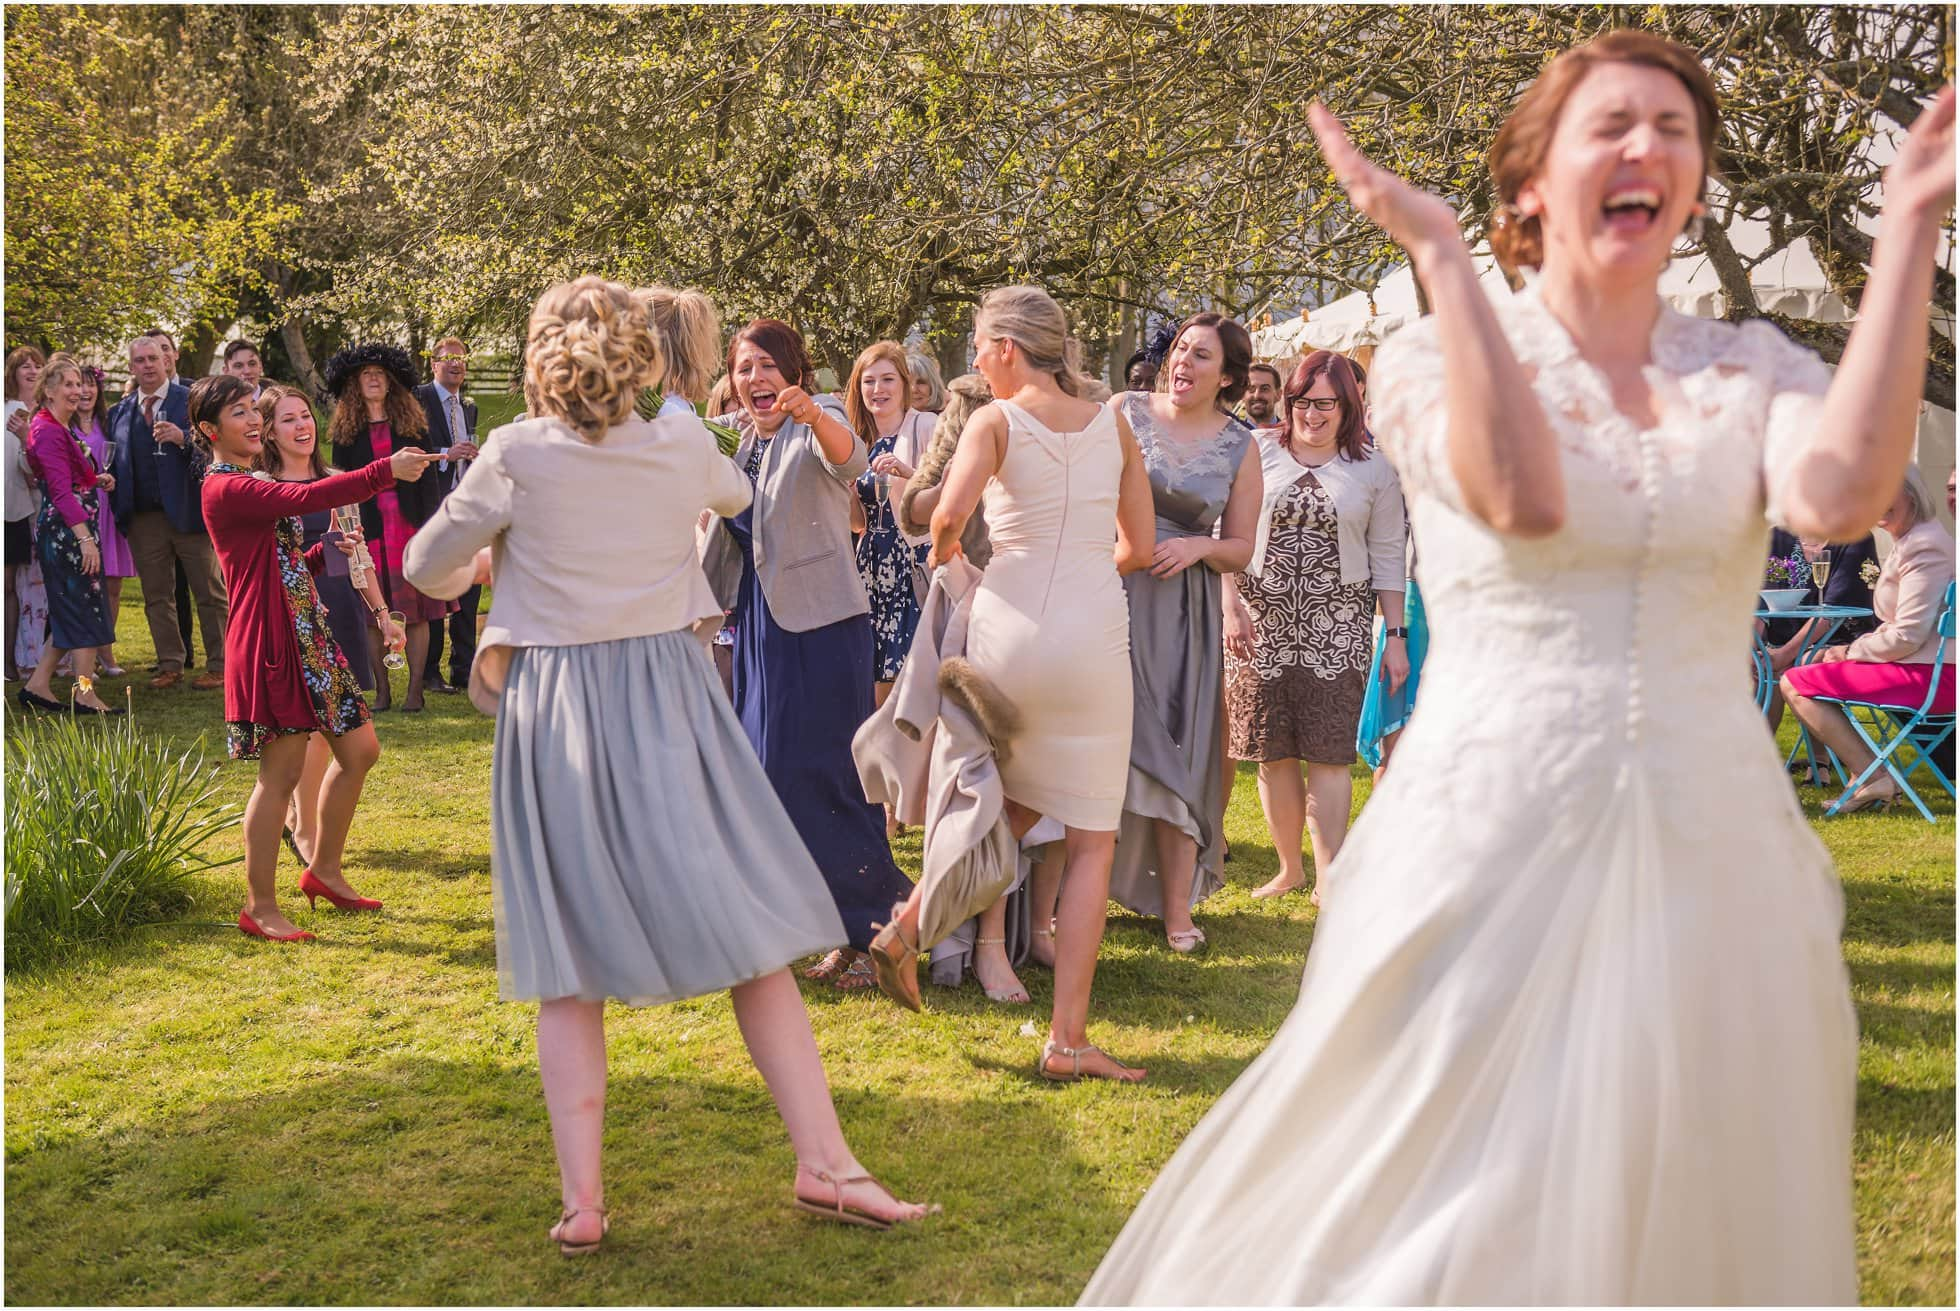 The bride in fits of laughter!